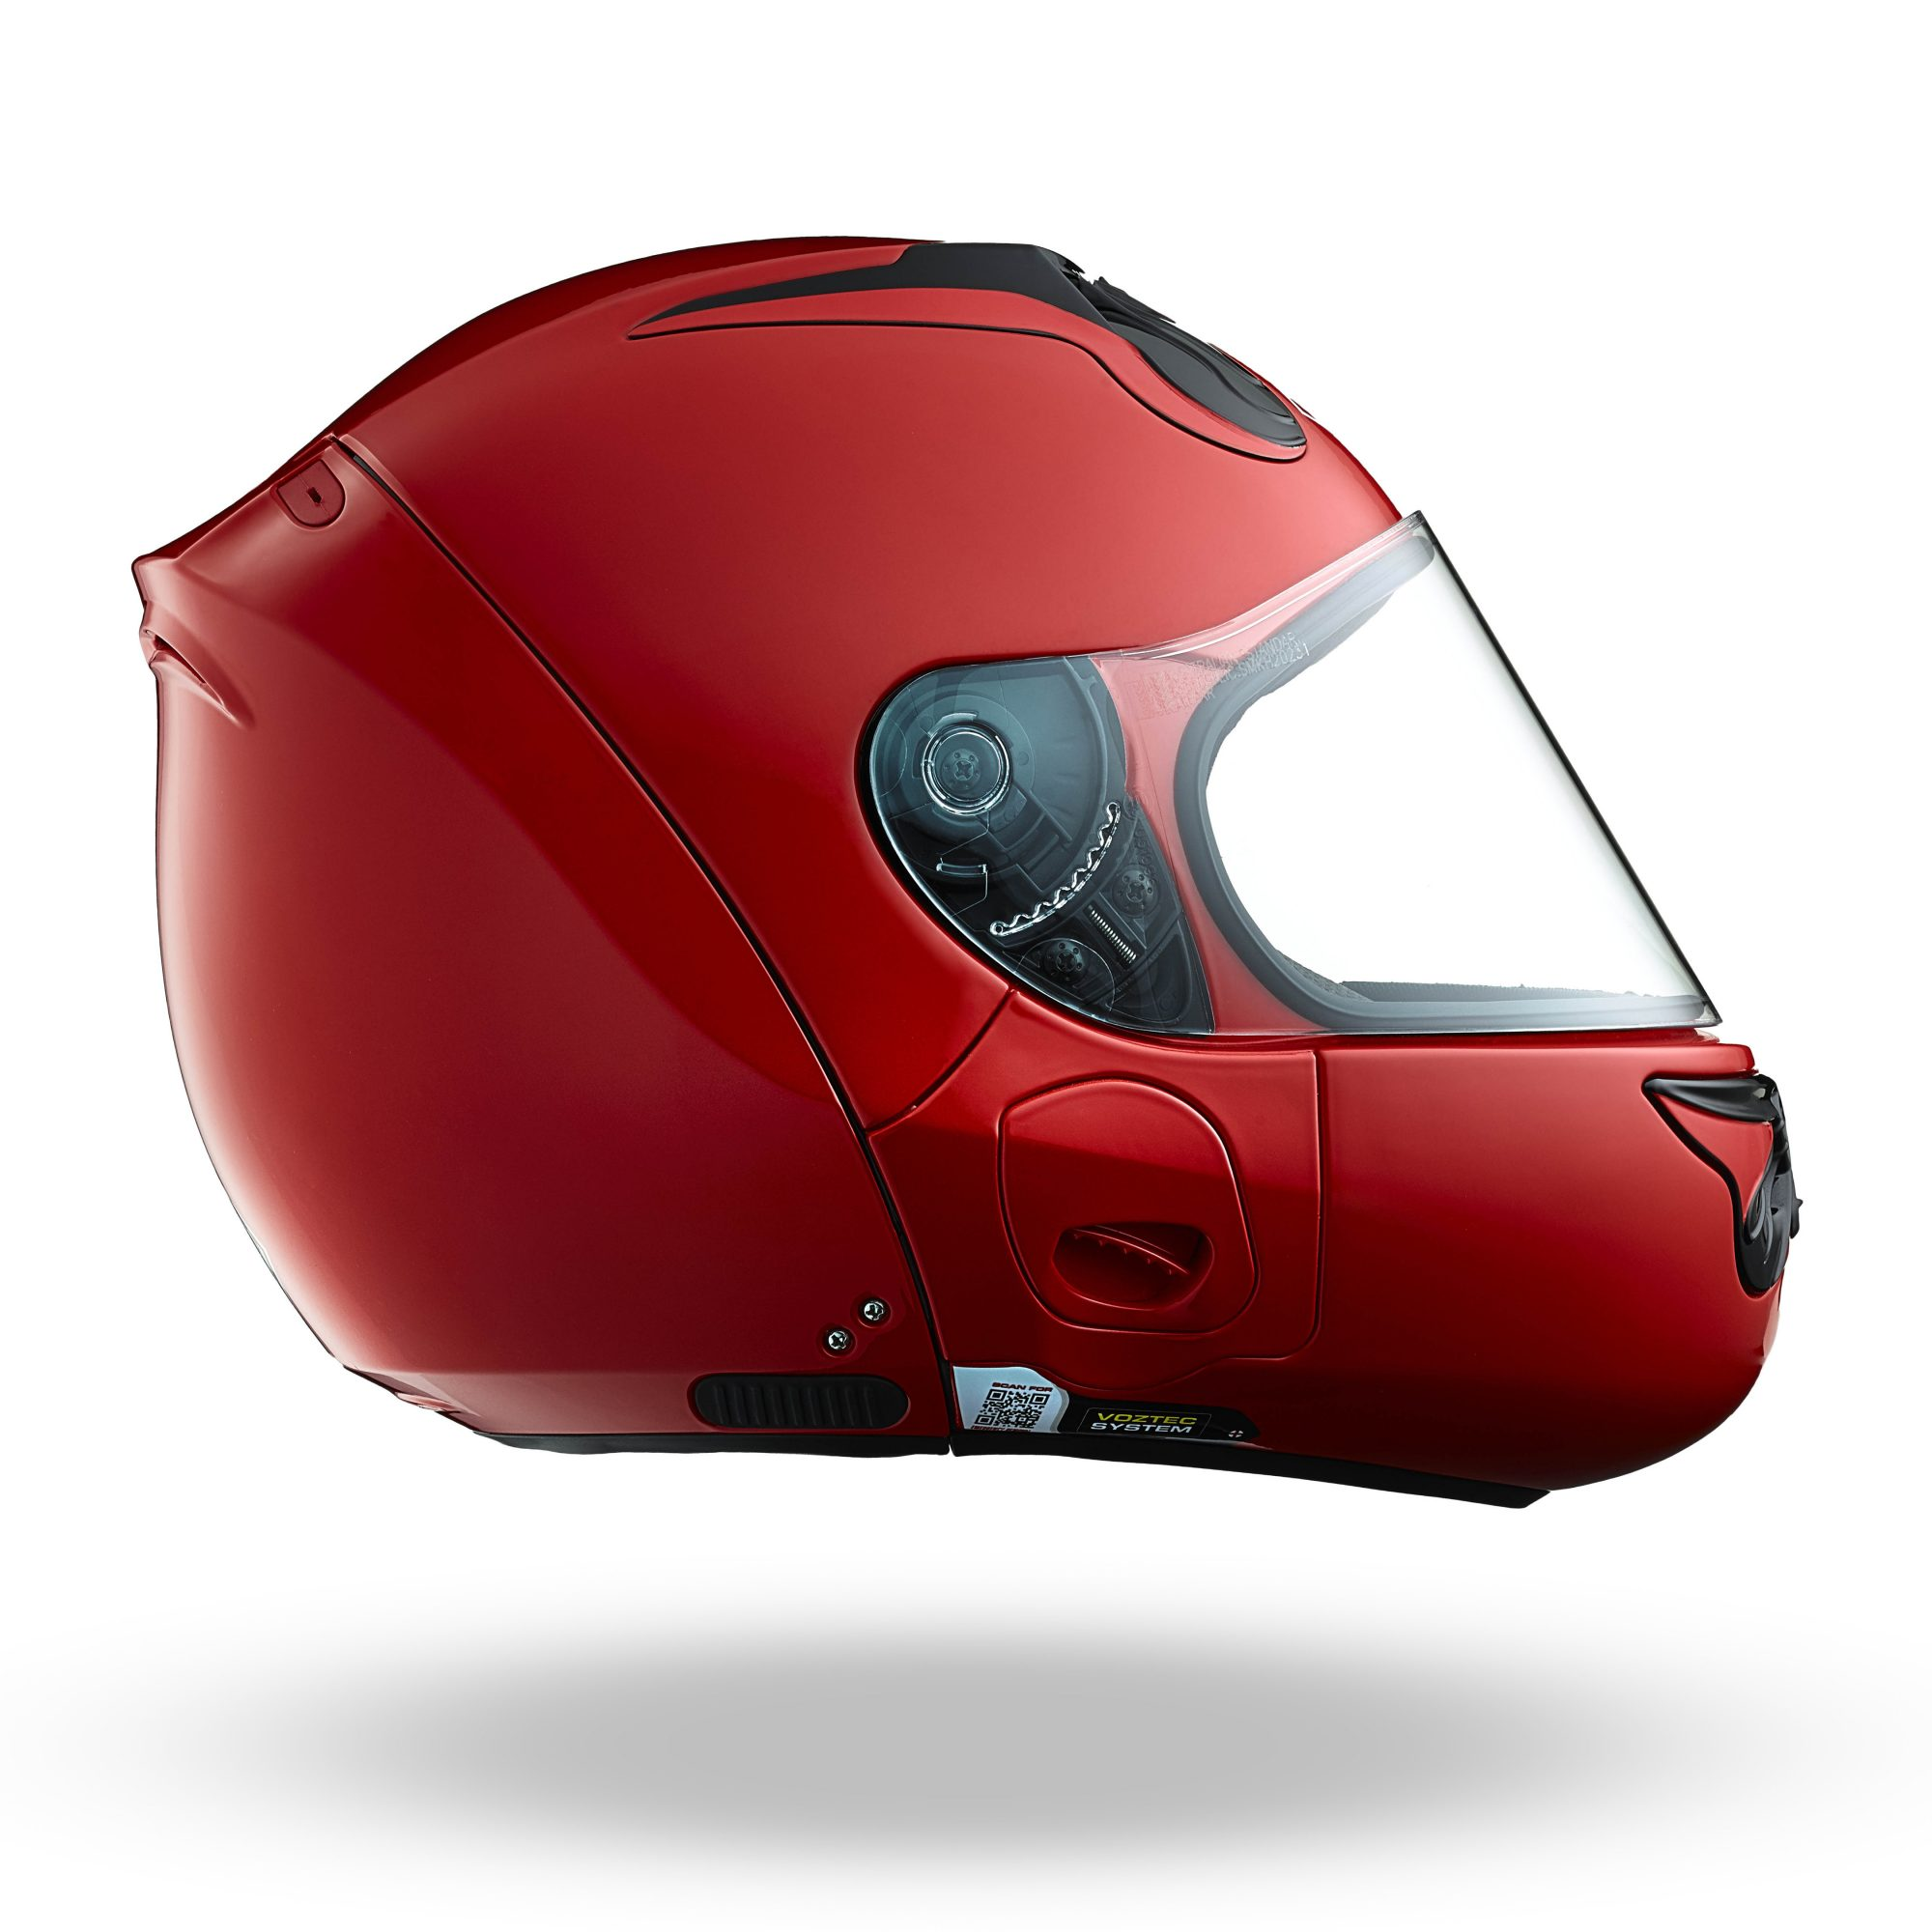 VOZZ_red_RS10